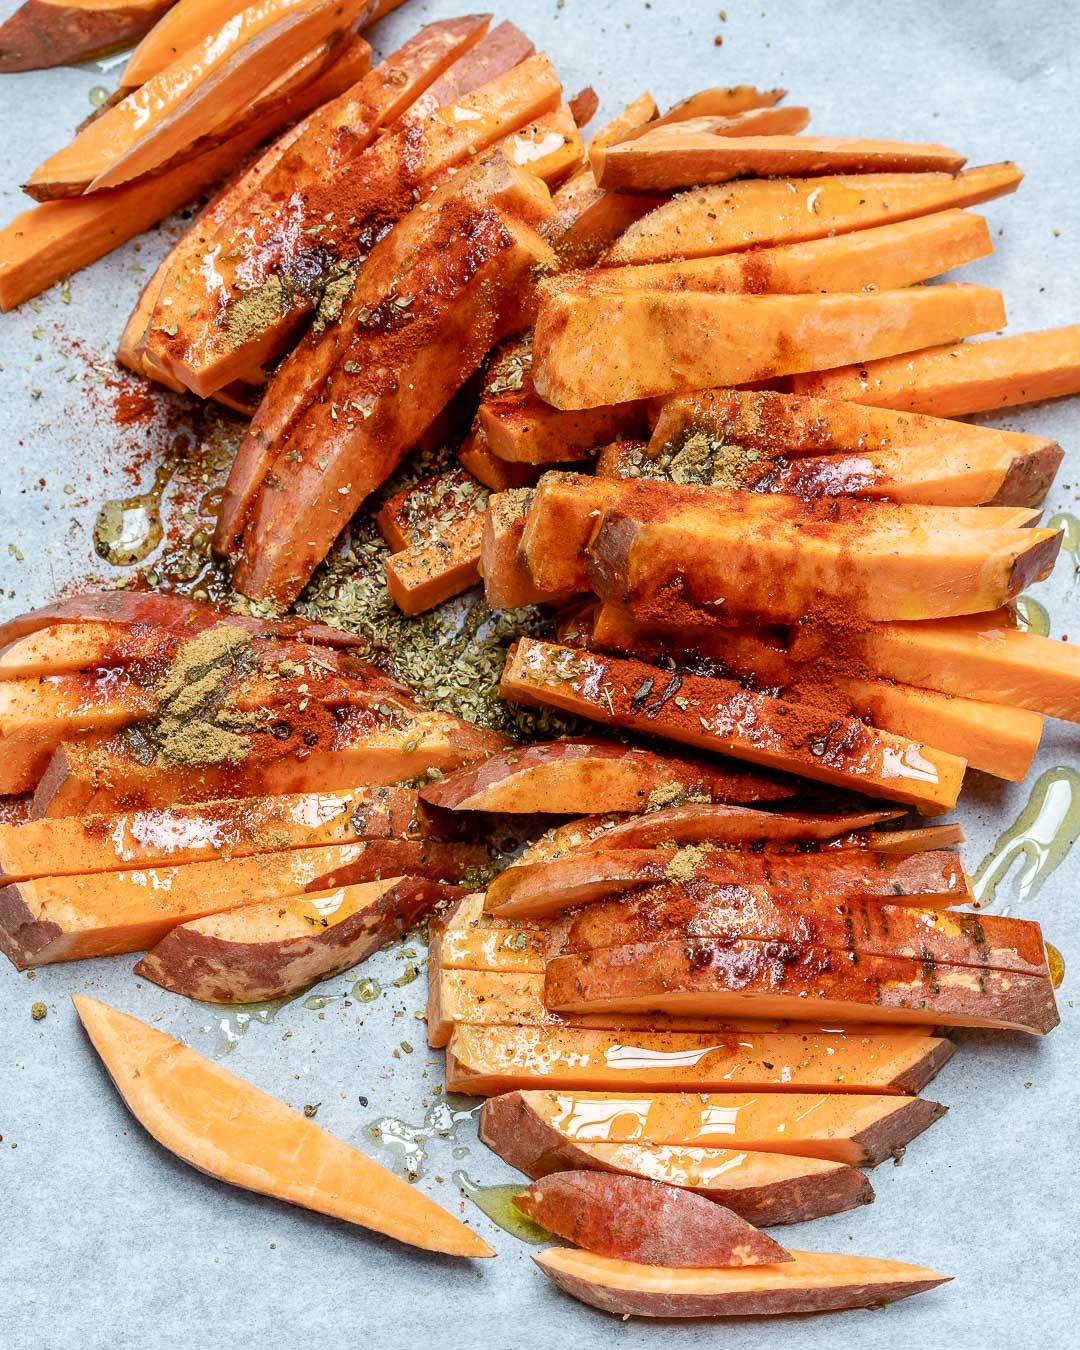 Recipe for roasted sweet potato fries